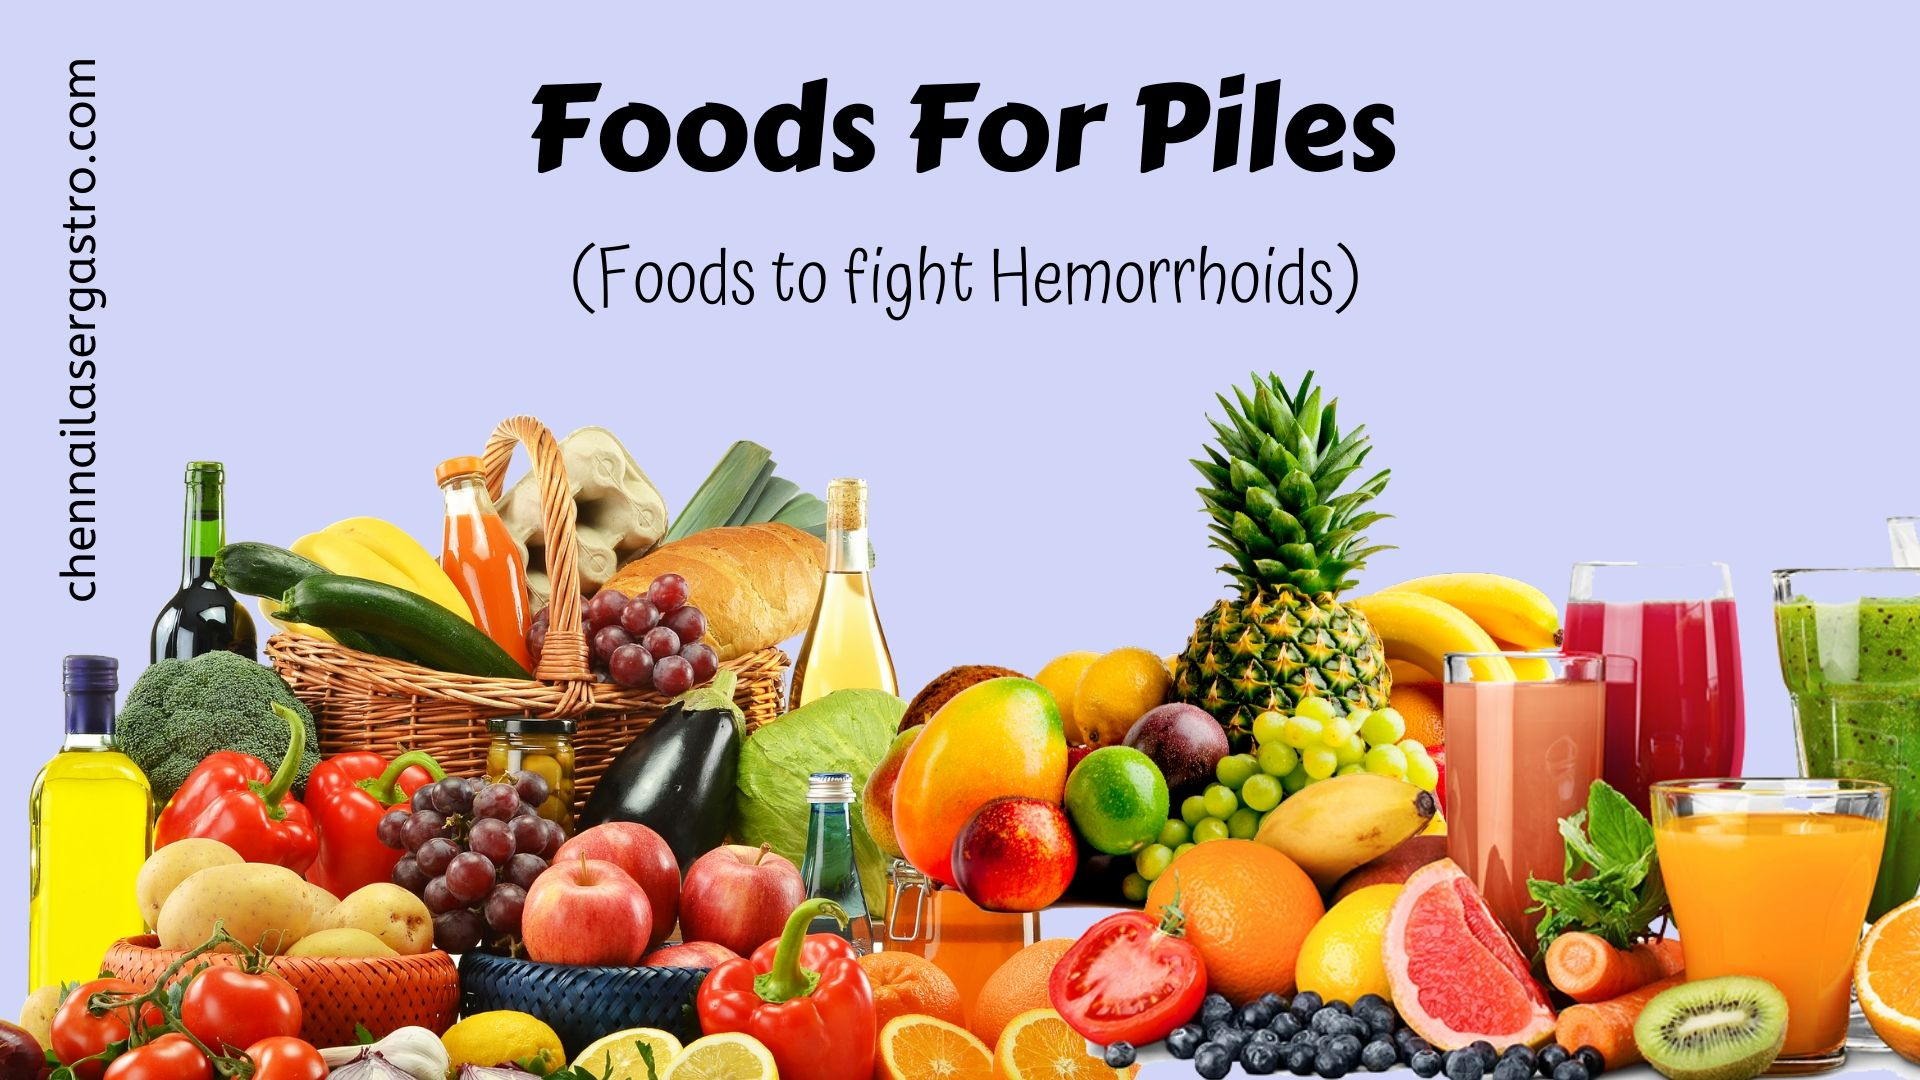 5 Foods to Eat When you have Hemorrhoids (Piles)